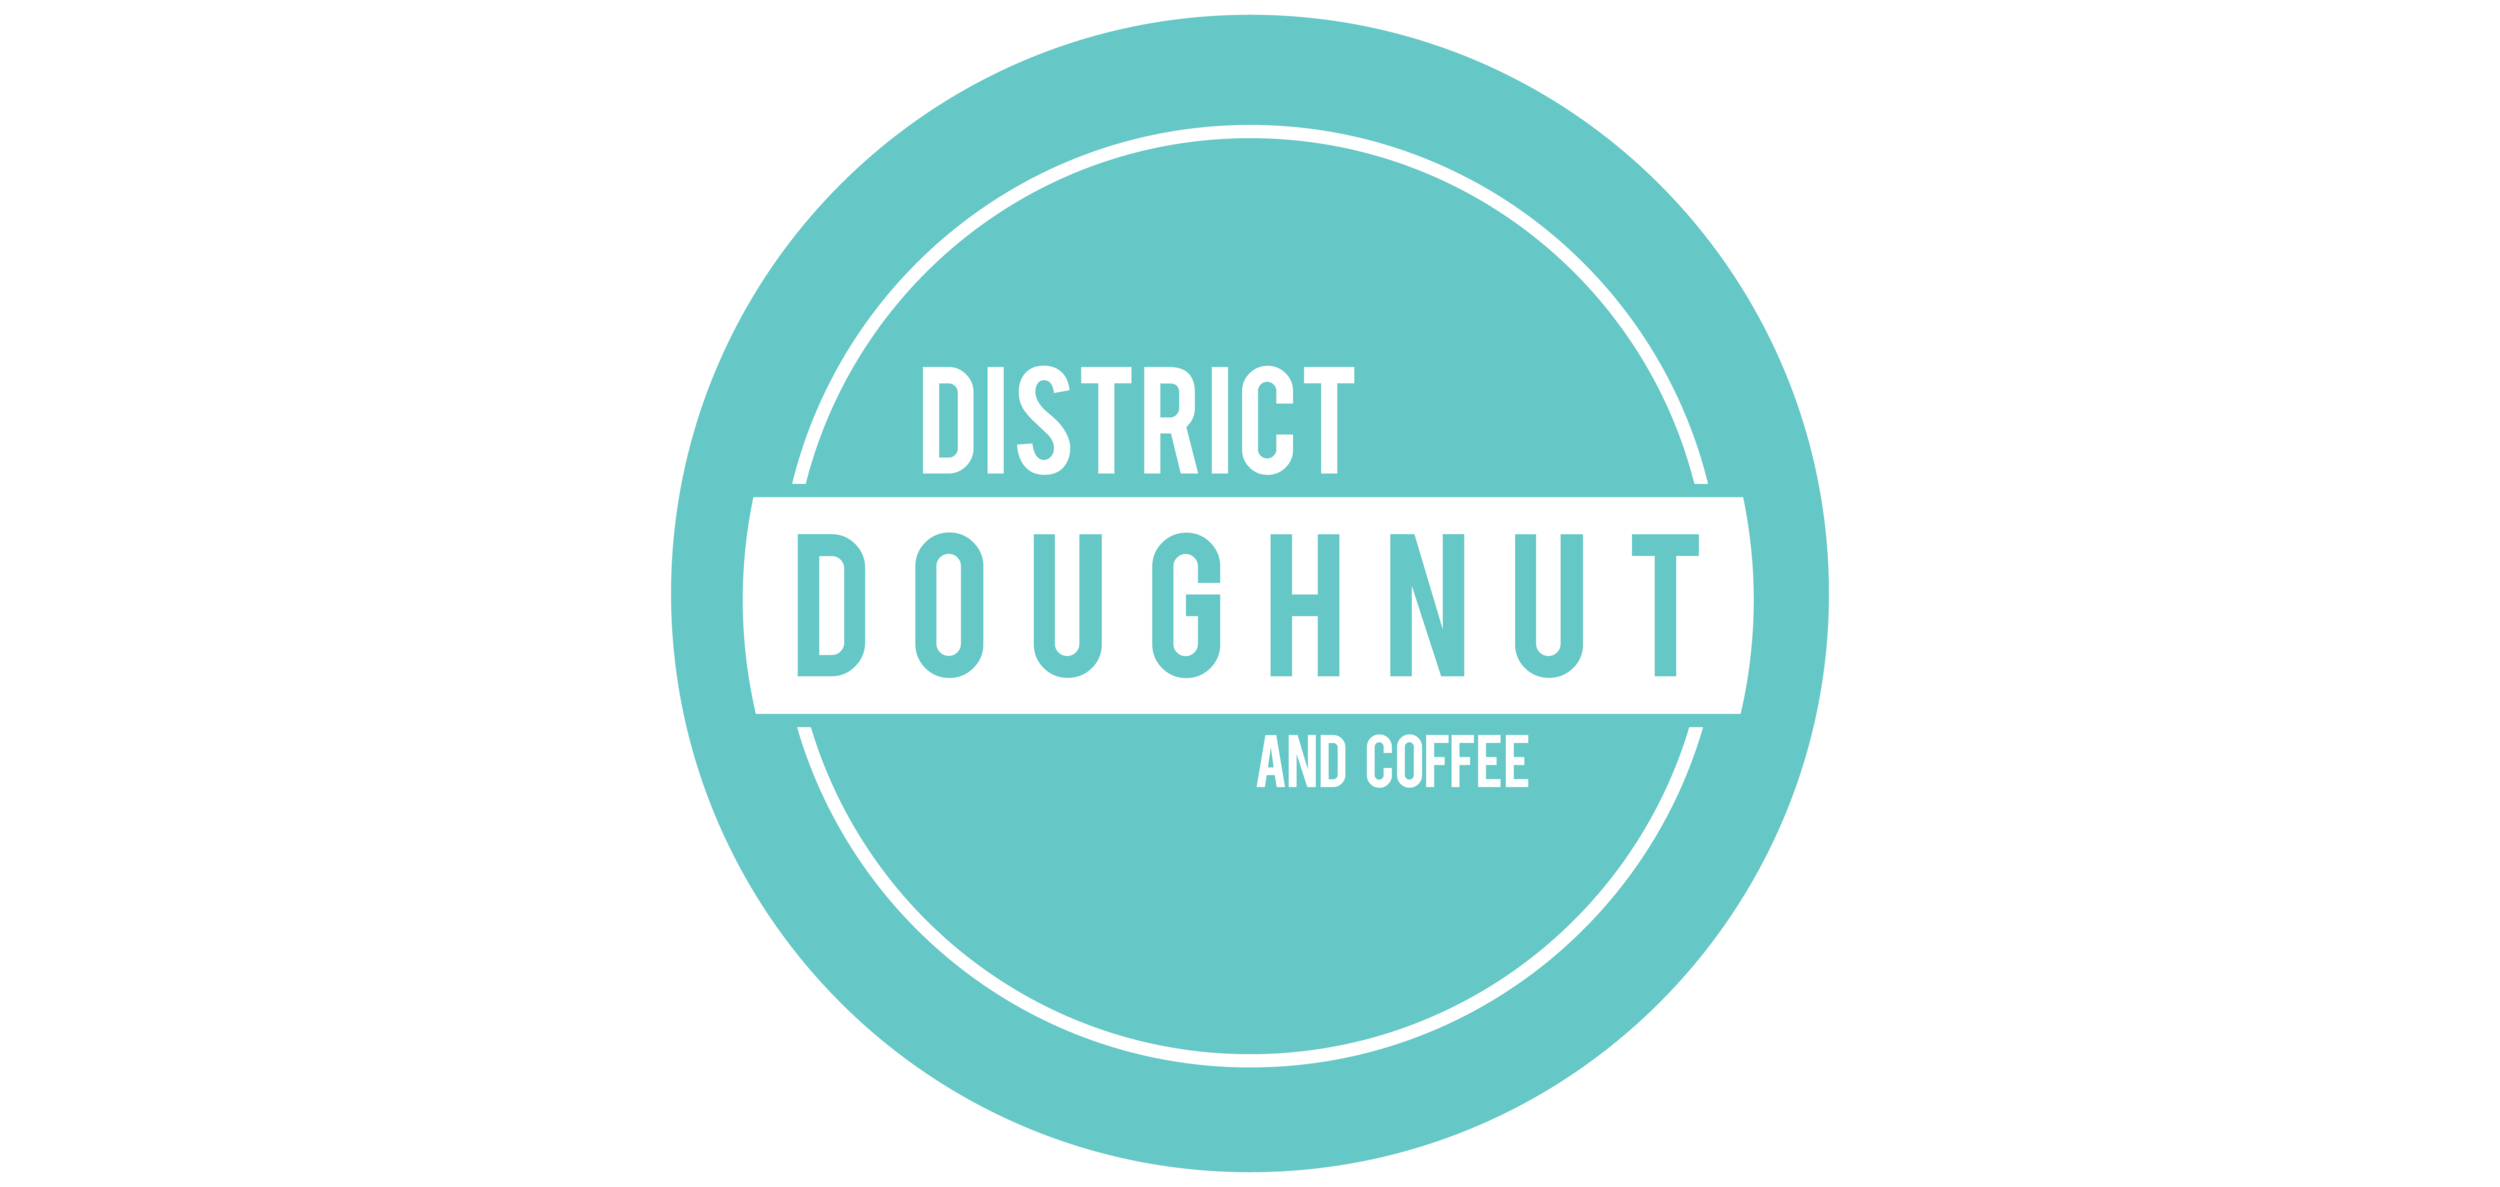 Copy of District_Doughnut_logo-wide-01.png